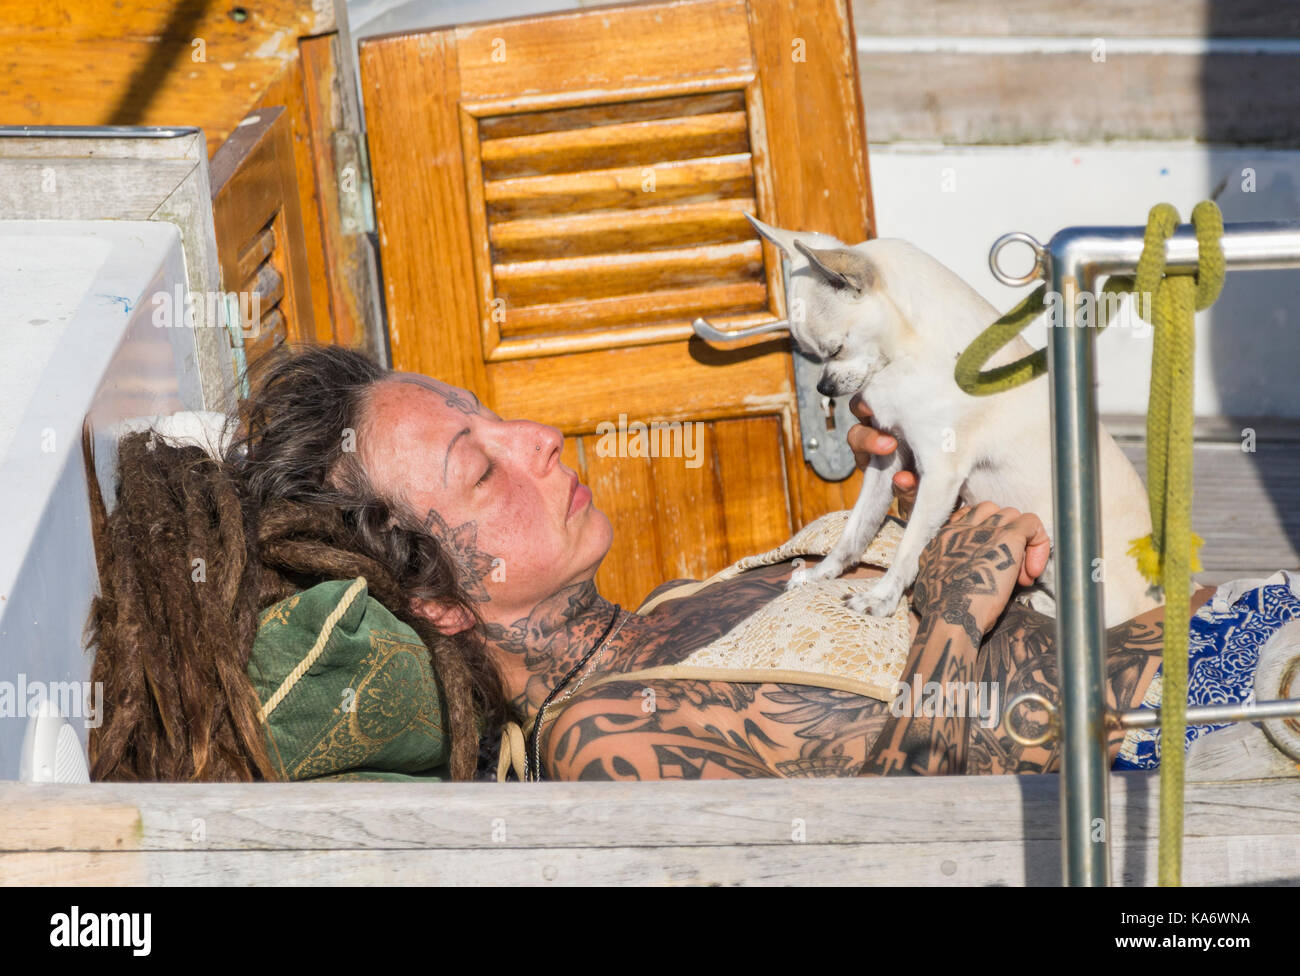 Woman with tattoos laying on a boat in the sun with a dog. - Stock Image